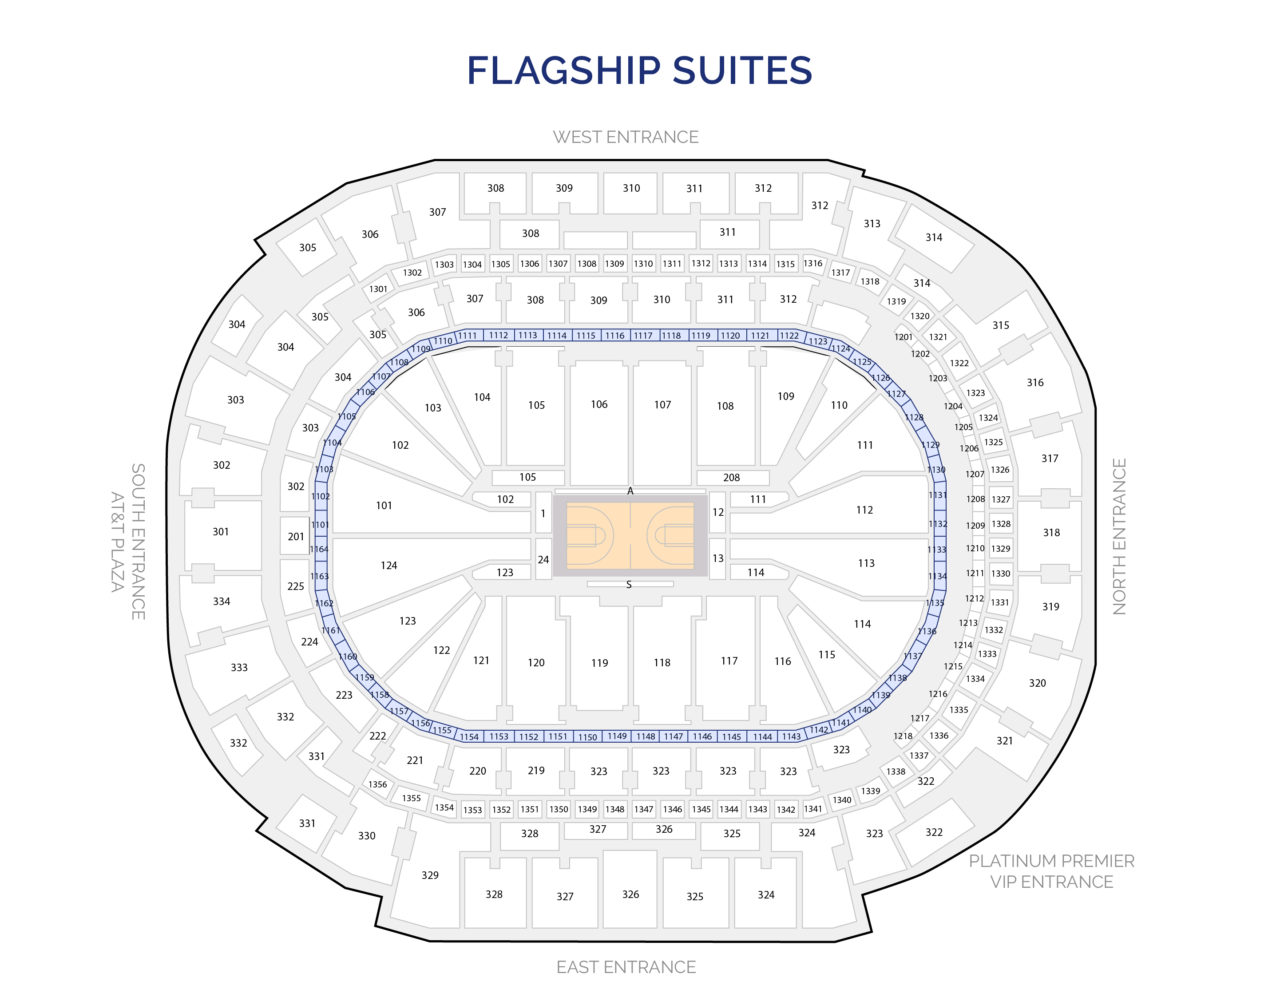 Dallas Mavericks Suites - Flagship Luxury Suites